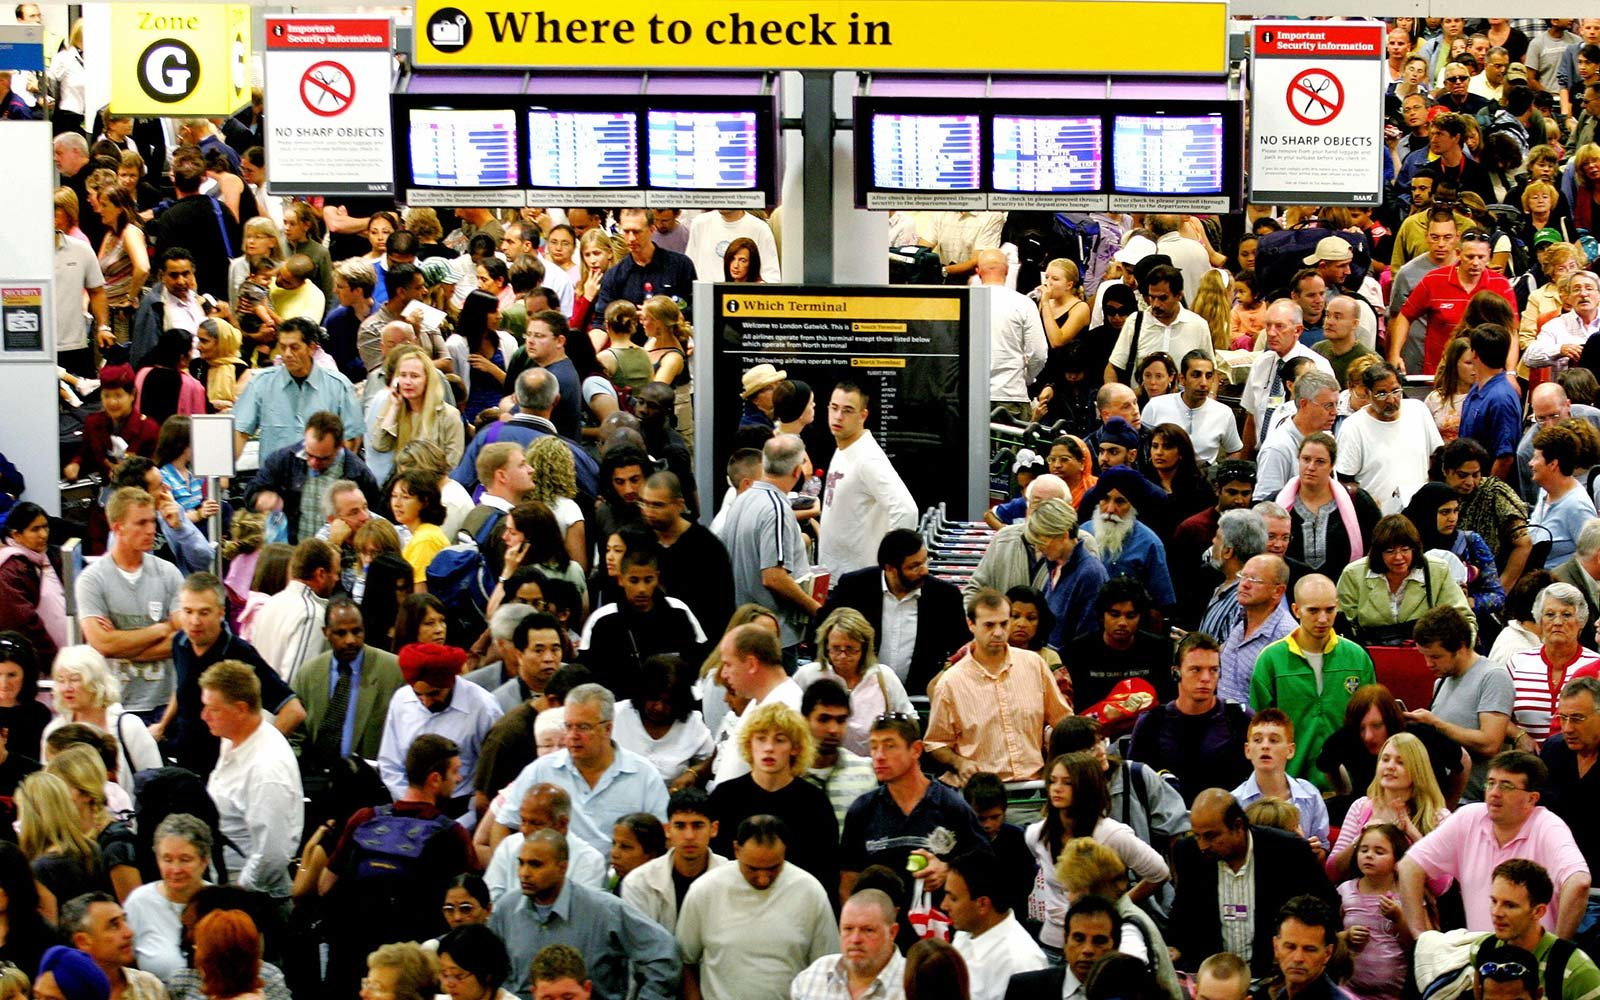 London Gatwick Airport Amadeus Computer Shut Down Crowds